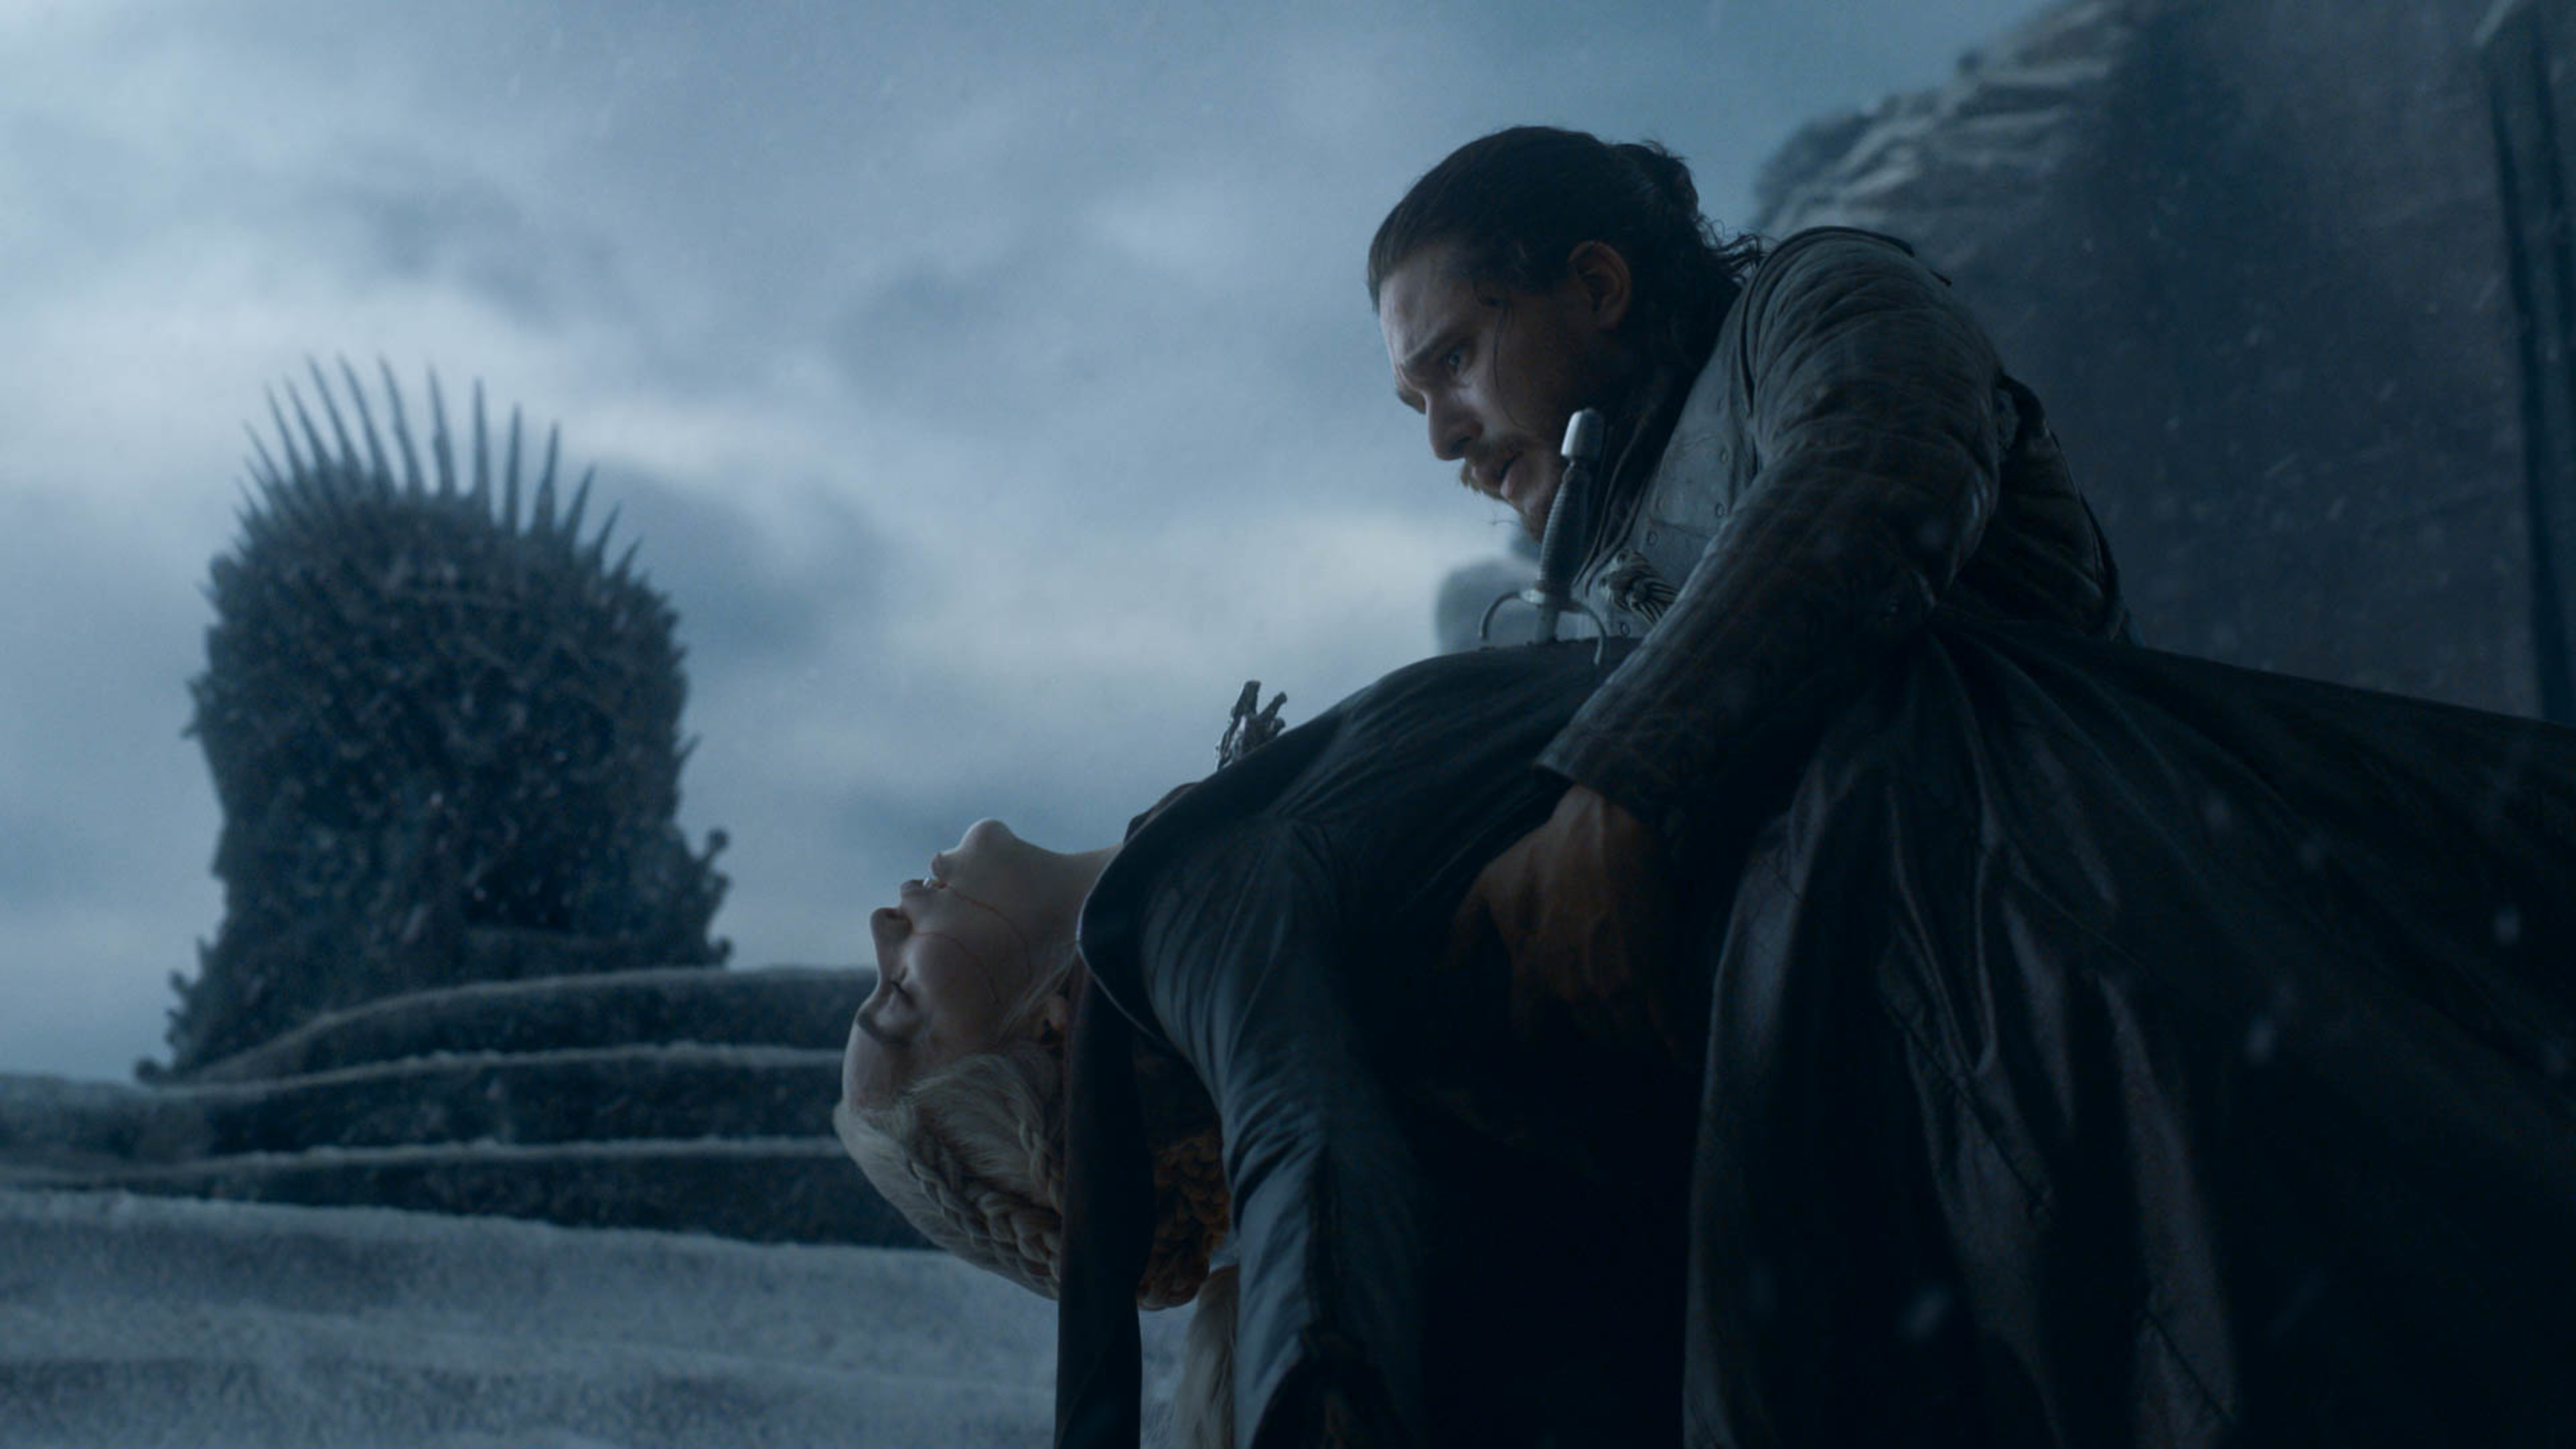 Daenerys Targaryen dies in Jon Snow's arms in the Game of Thrones series finale